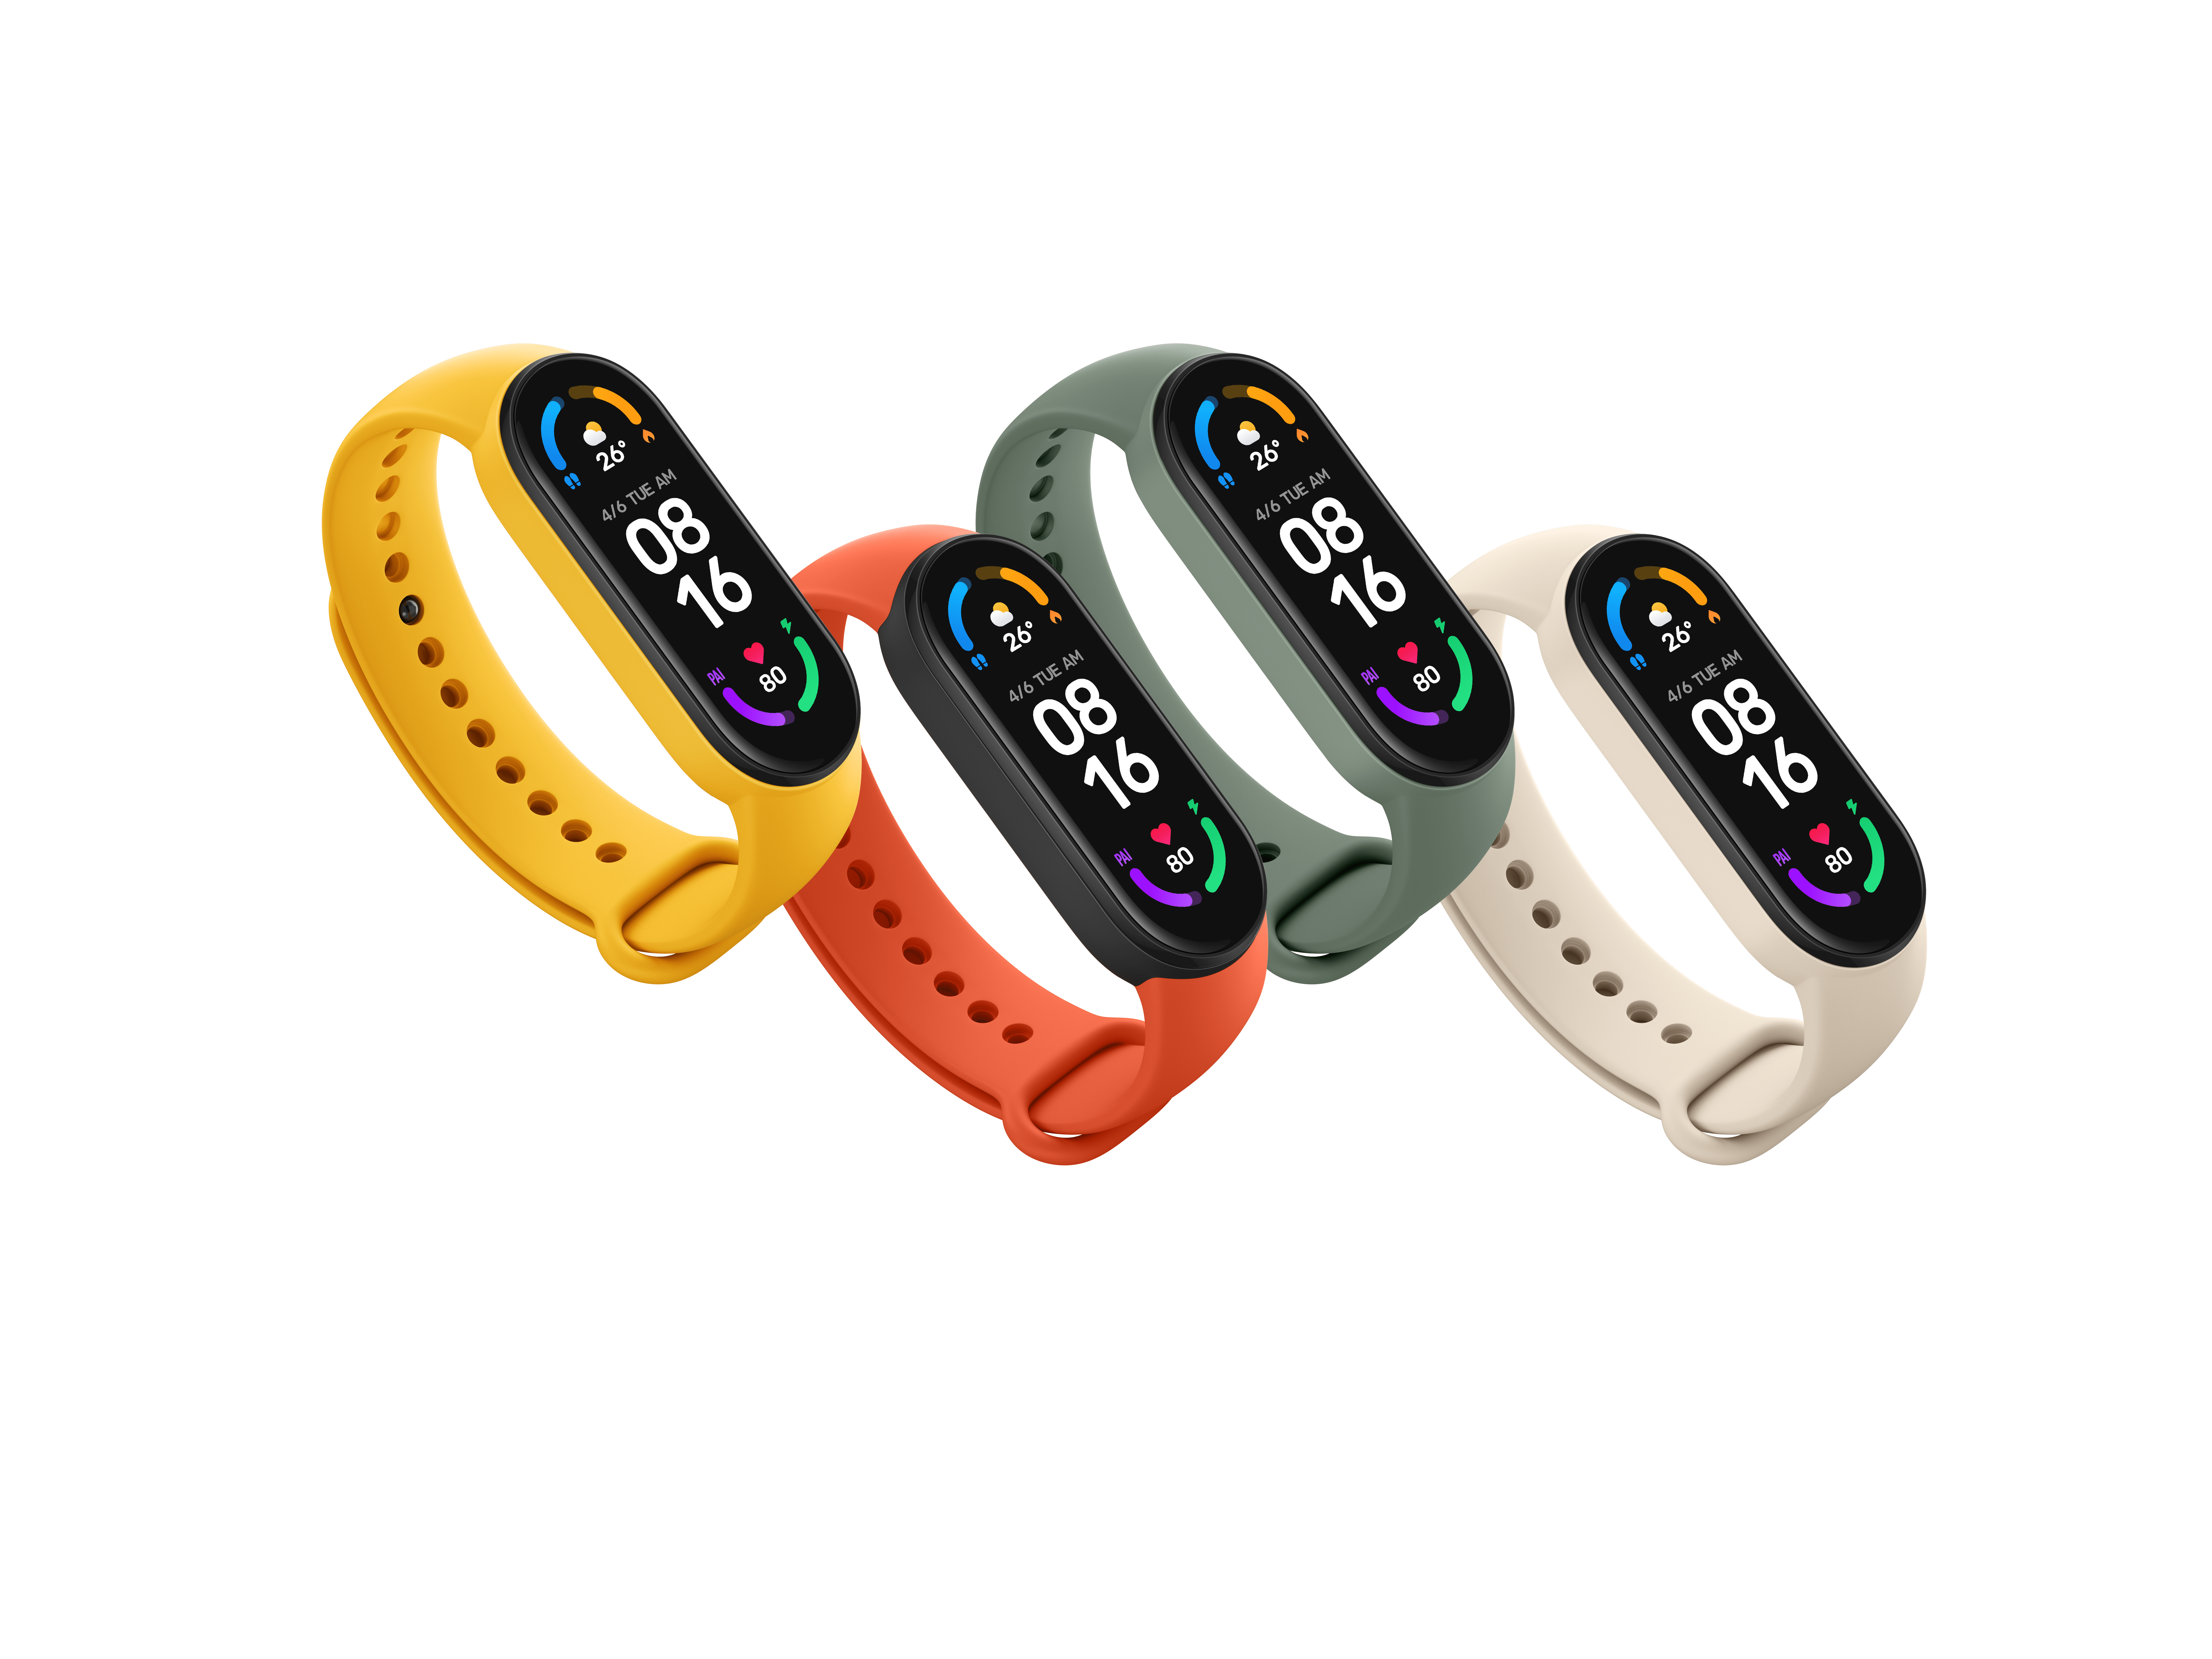 Mi Band 6 in its available colors